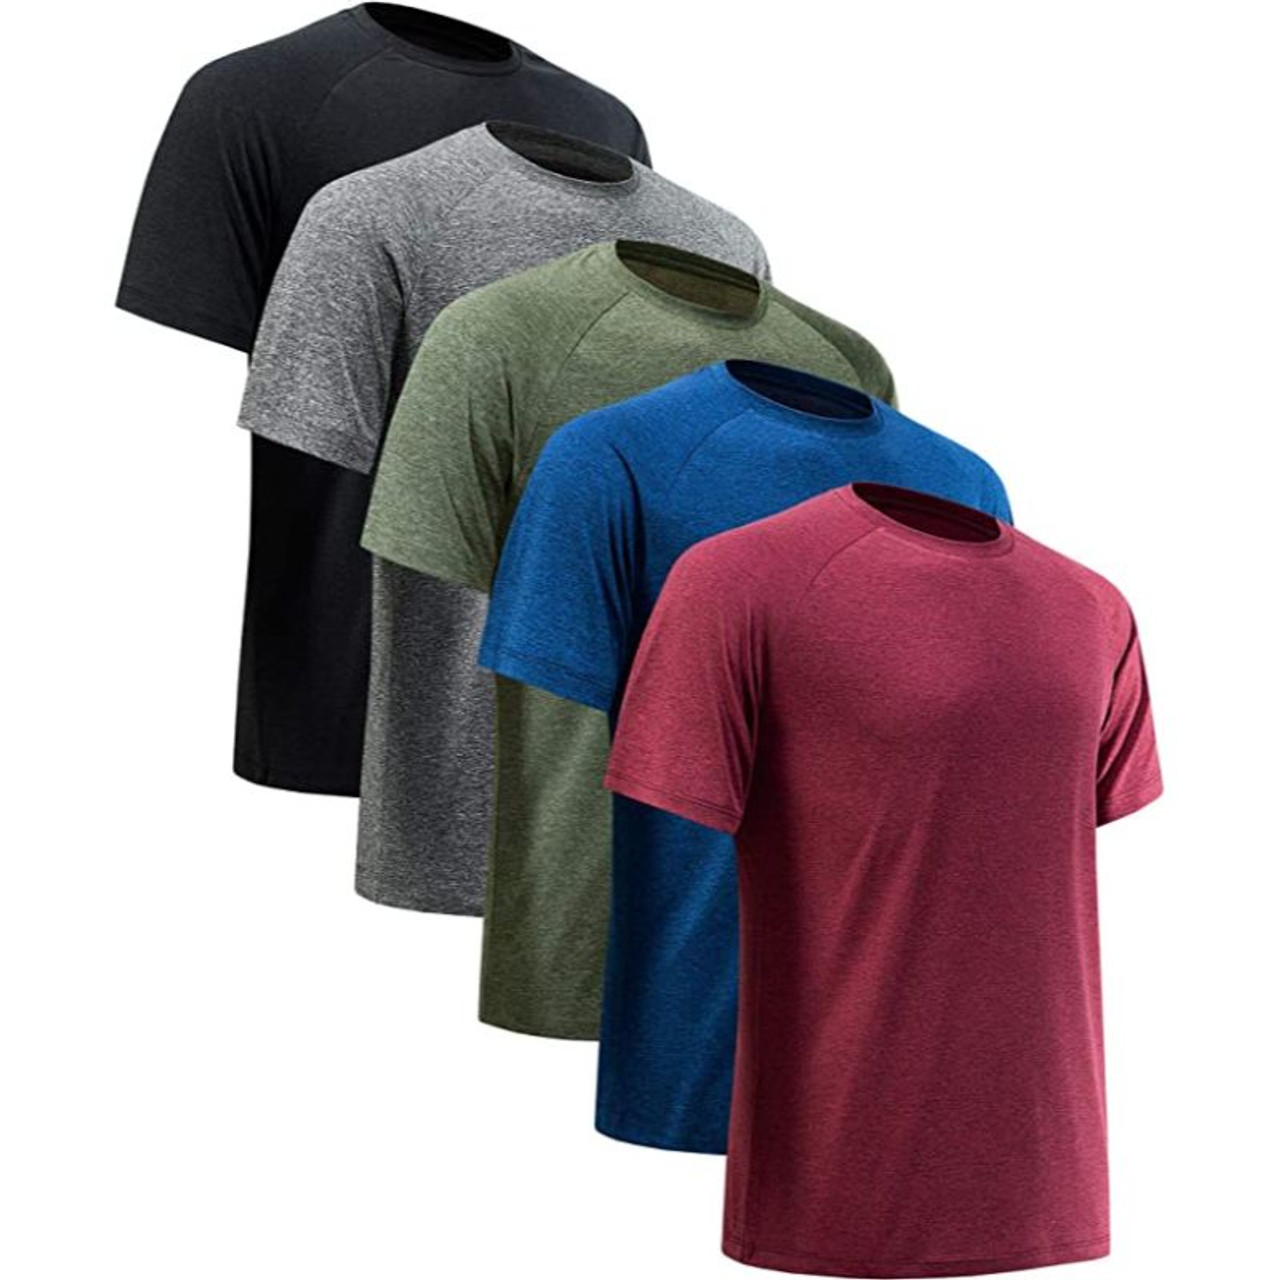 Men's Active Athletic Dry-Fit Performance Tees - 5 Pack